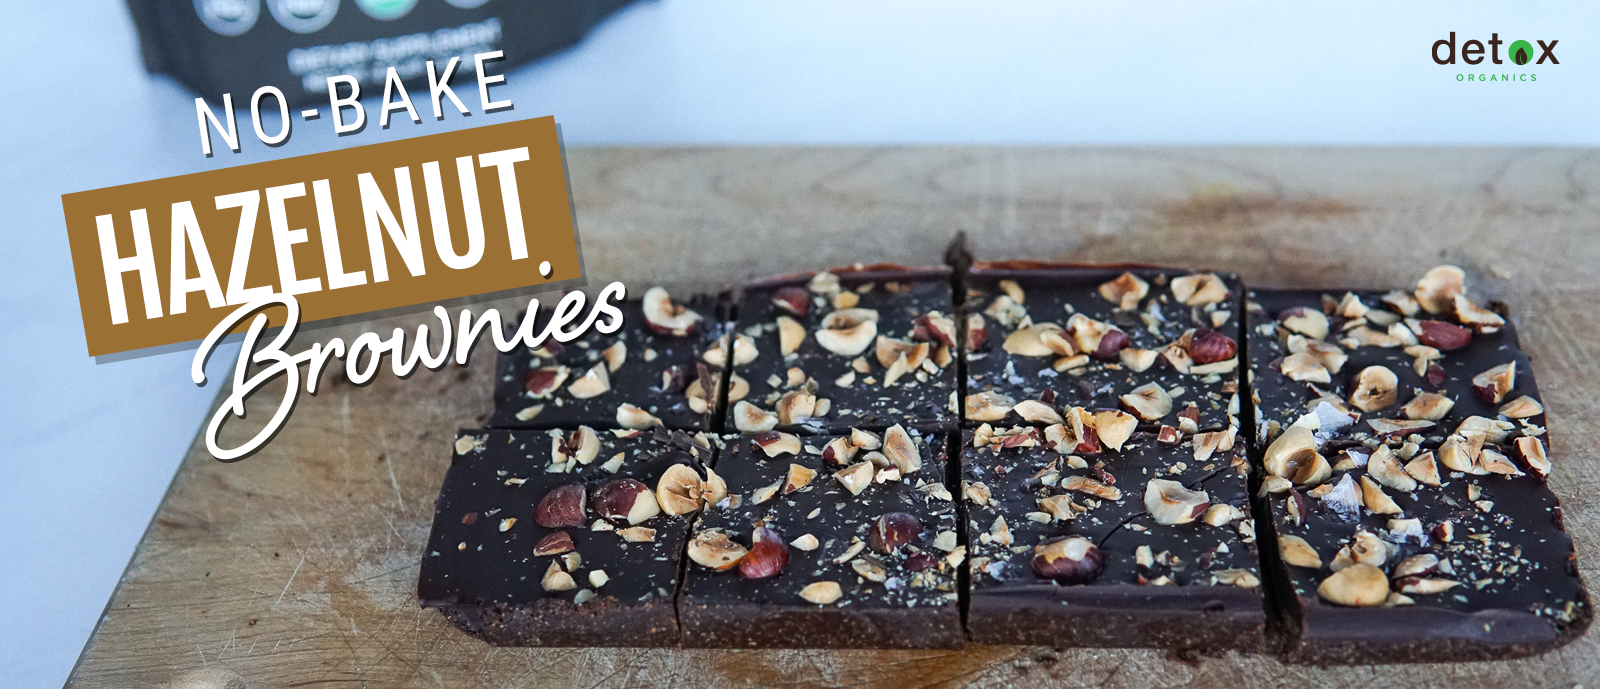 No-Bake Hazelnut Brownies